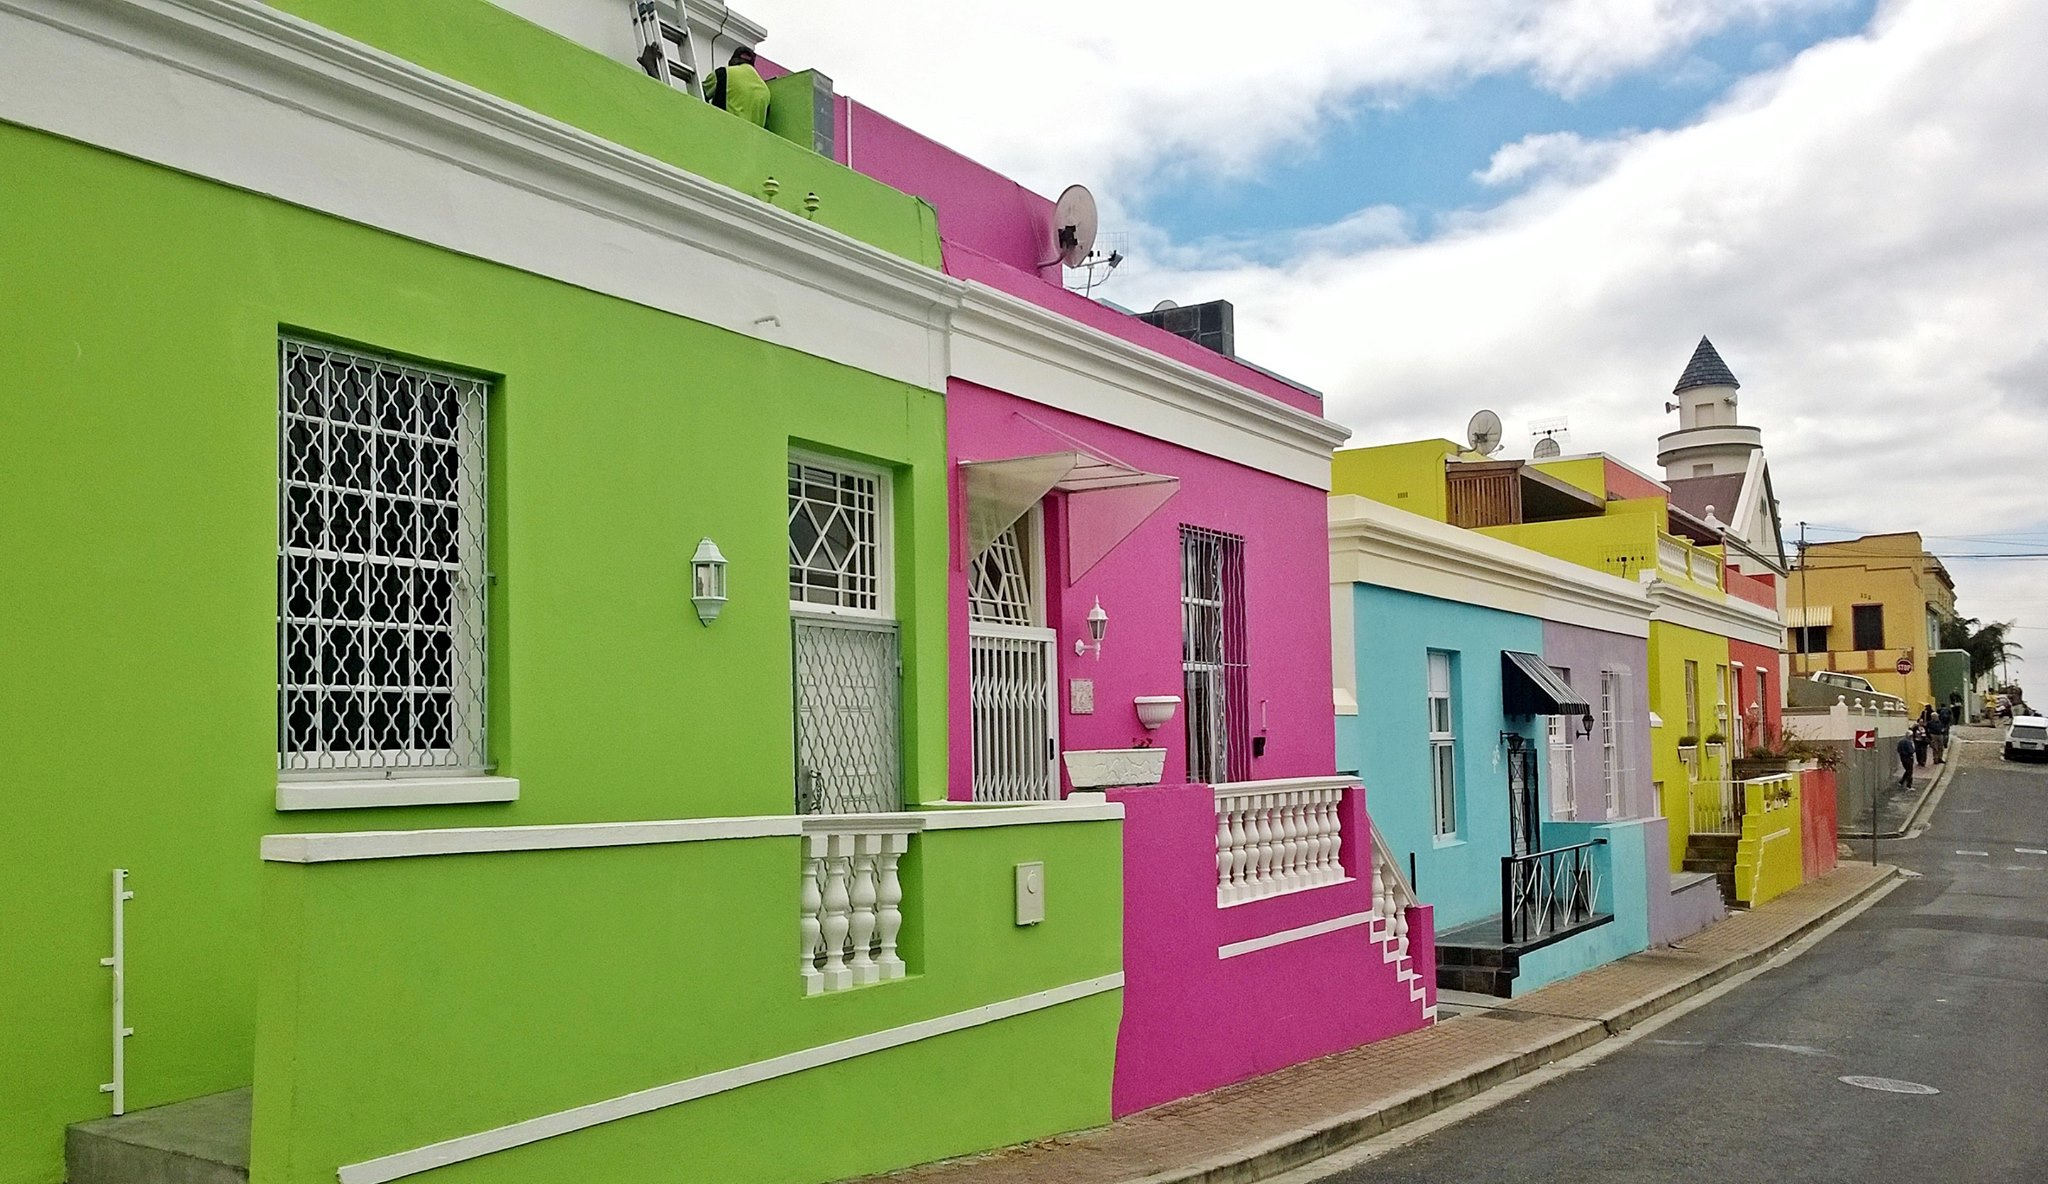 bo-kaap-coloured-houses-cape-town